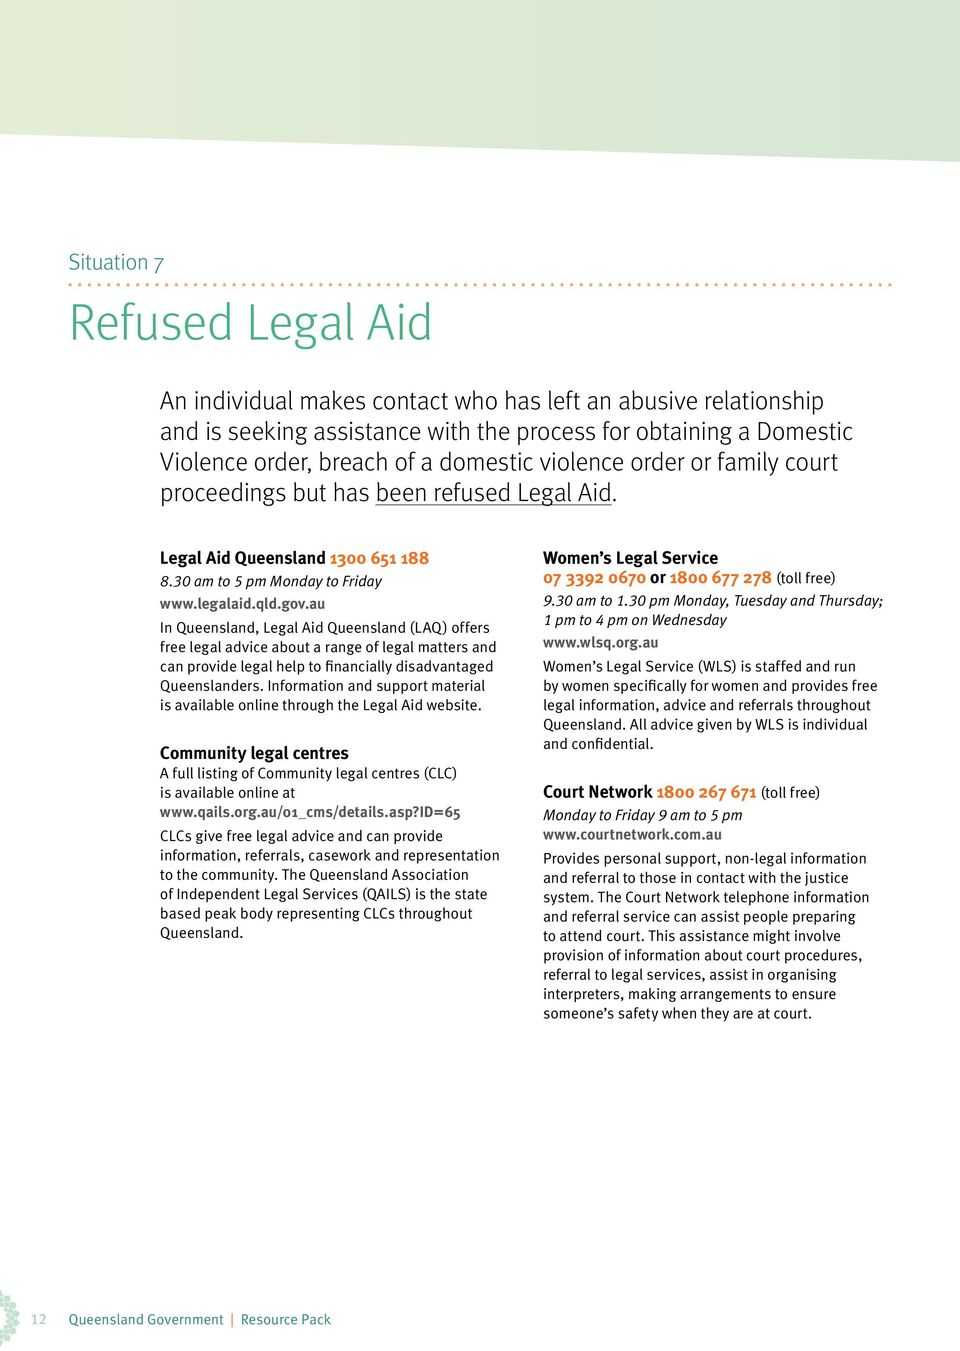 au In Queensland, Legal Aid Queensland (LAQ) offers free legal advice about a range of legal matters and can provide legal help to financially disadvantaged Queenslanders.